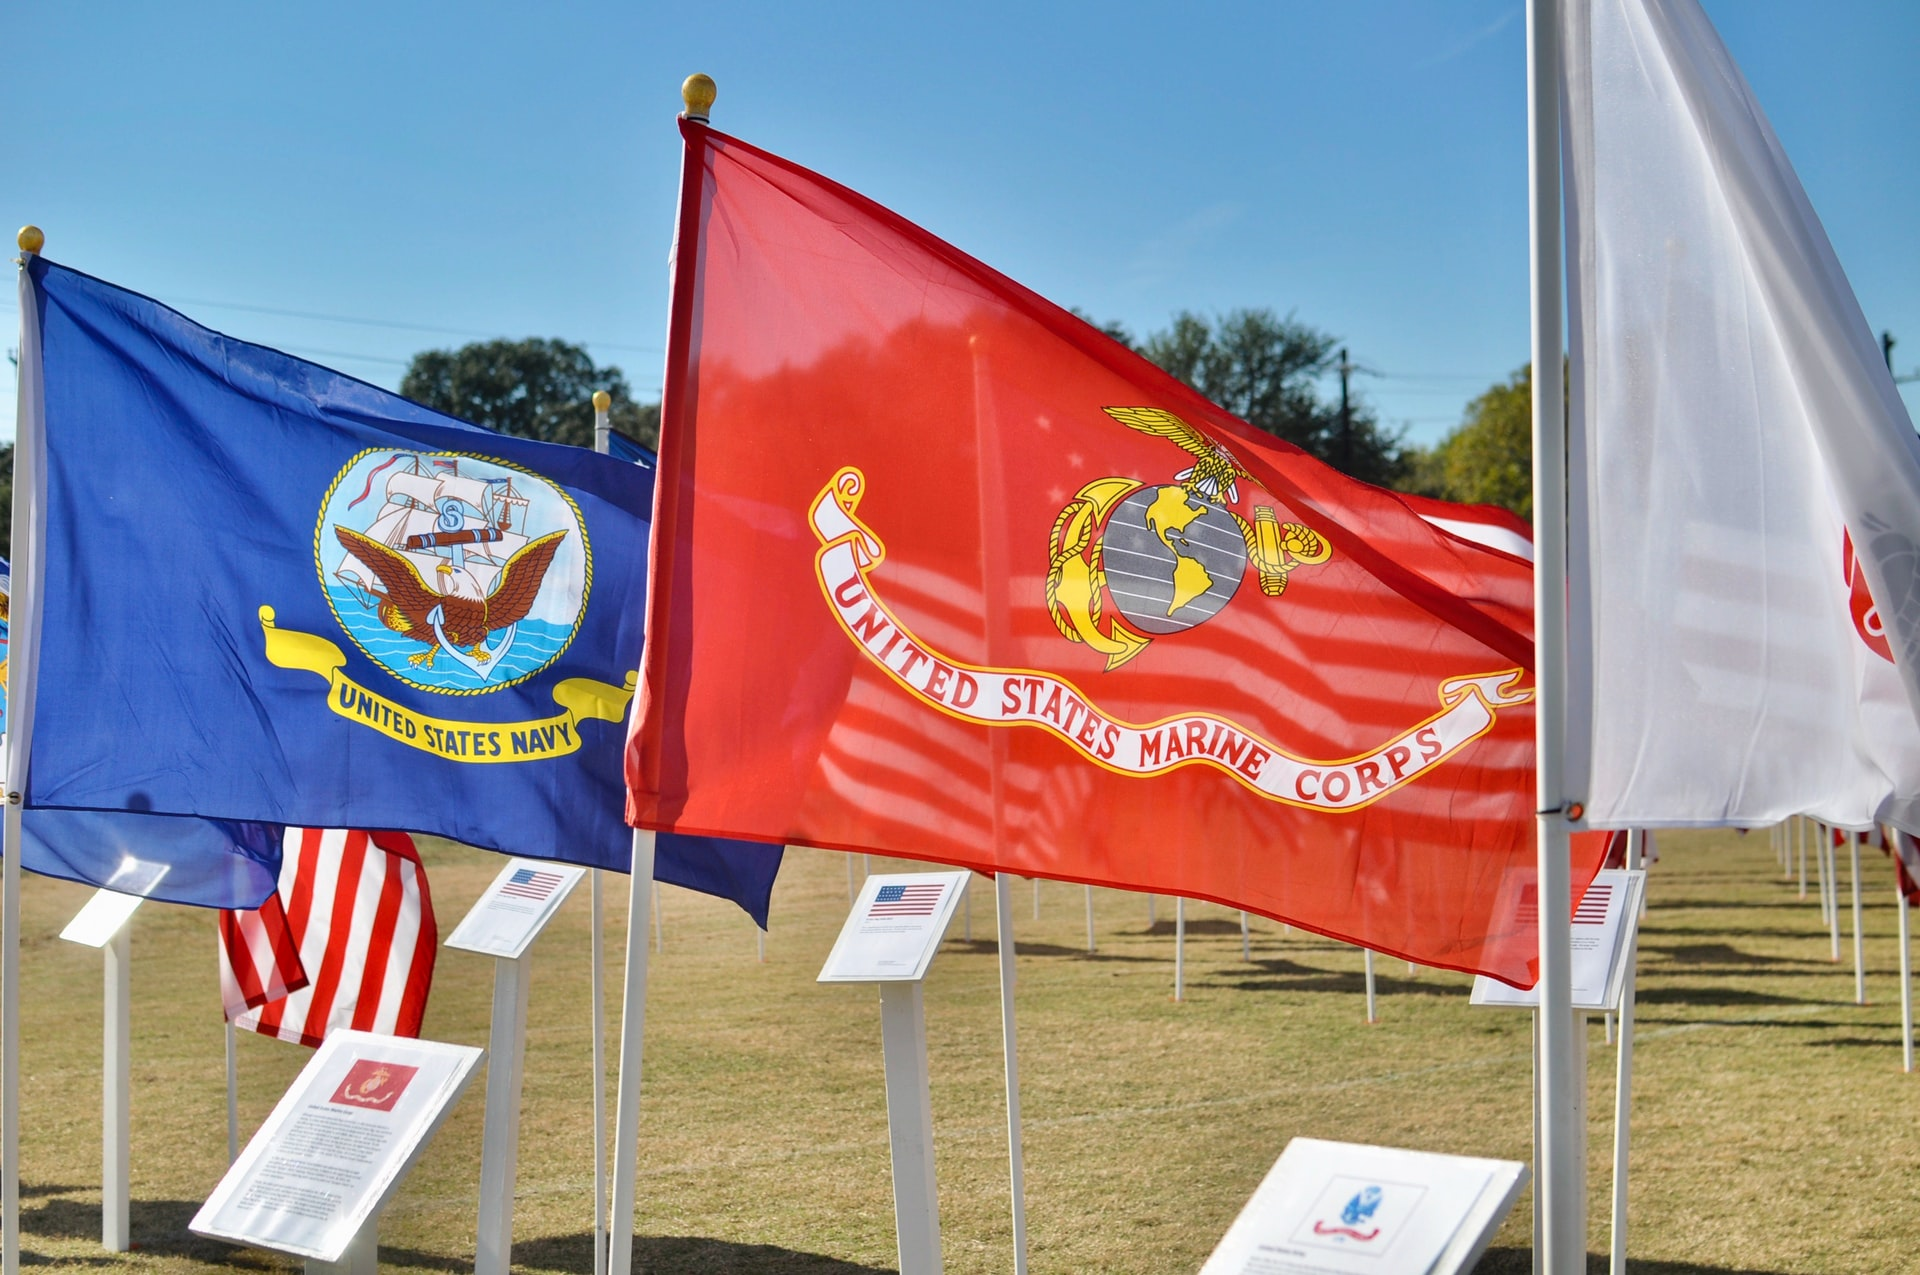 Veterans Command About Page Hero Banner Image - Different Flags of the US Military